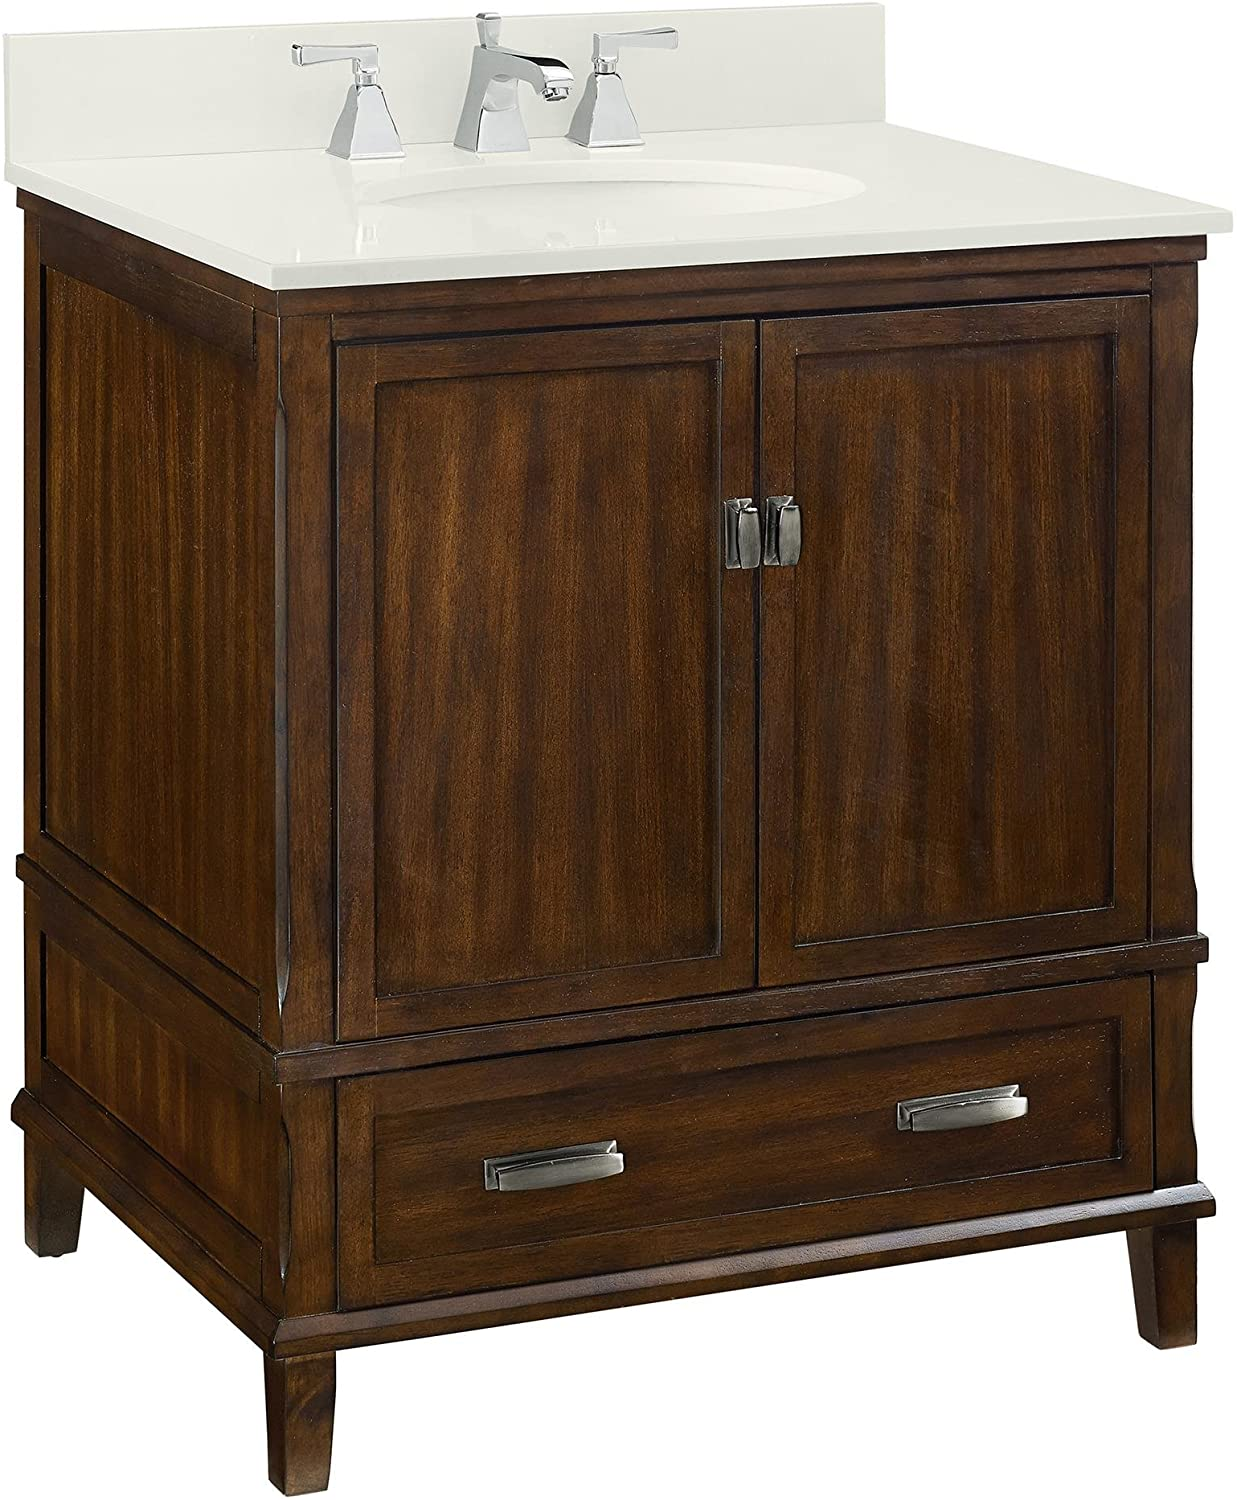 Amazon Com Dorel Living Otum 30 Bathroom Vanity Dark Walnut Furniture Decor